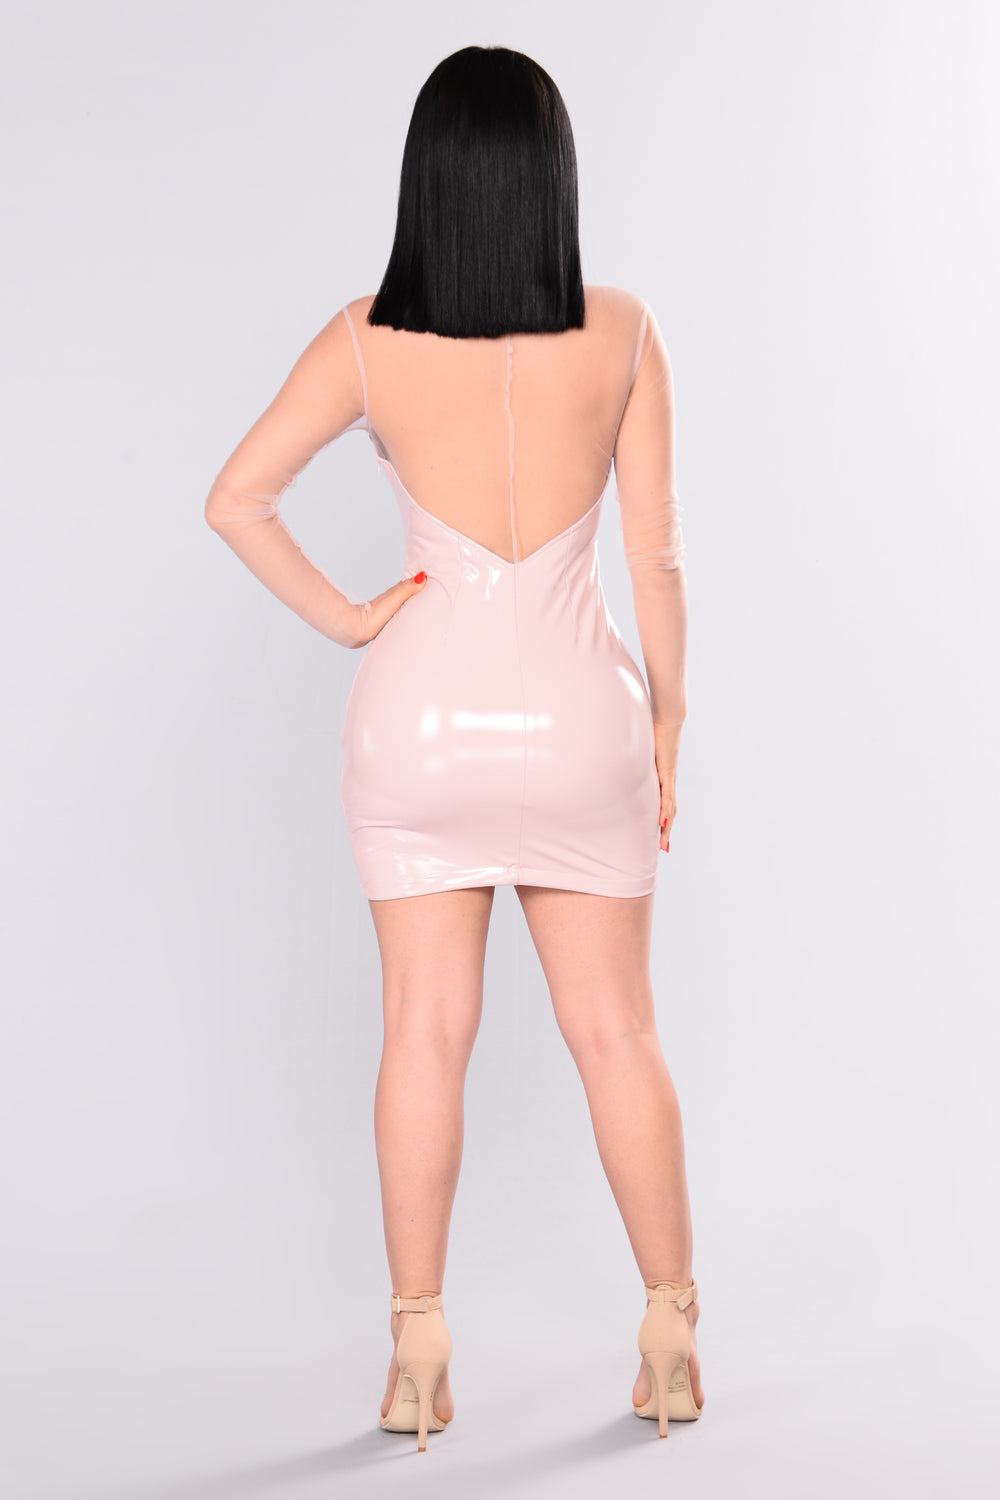 Make Your Mark Latex Dress - Pink